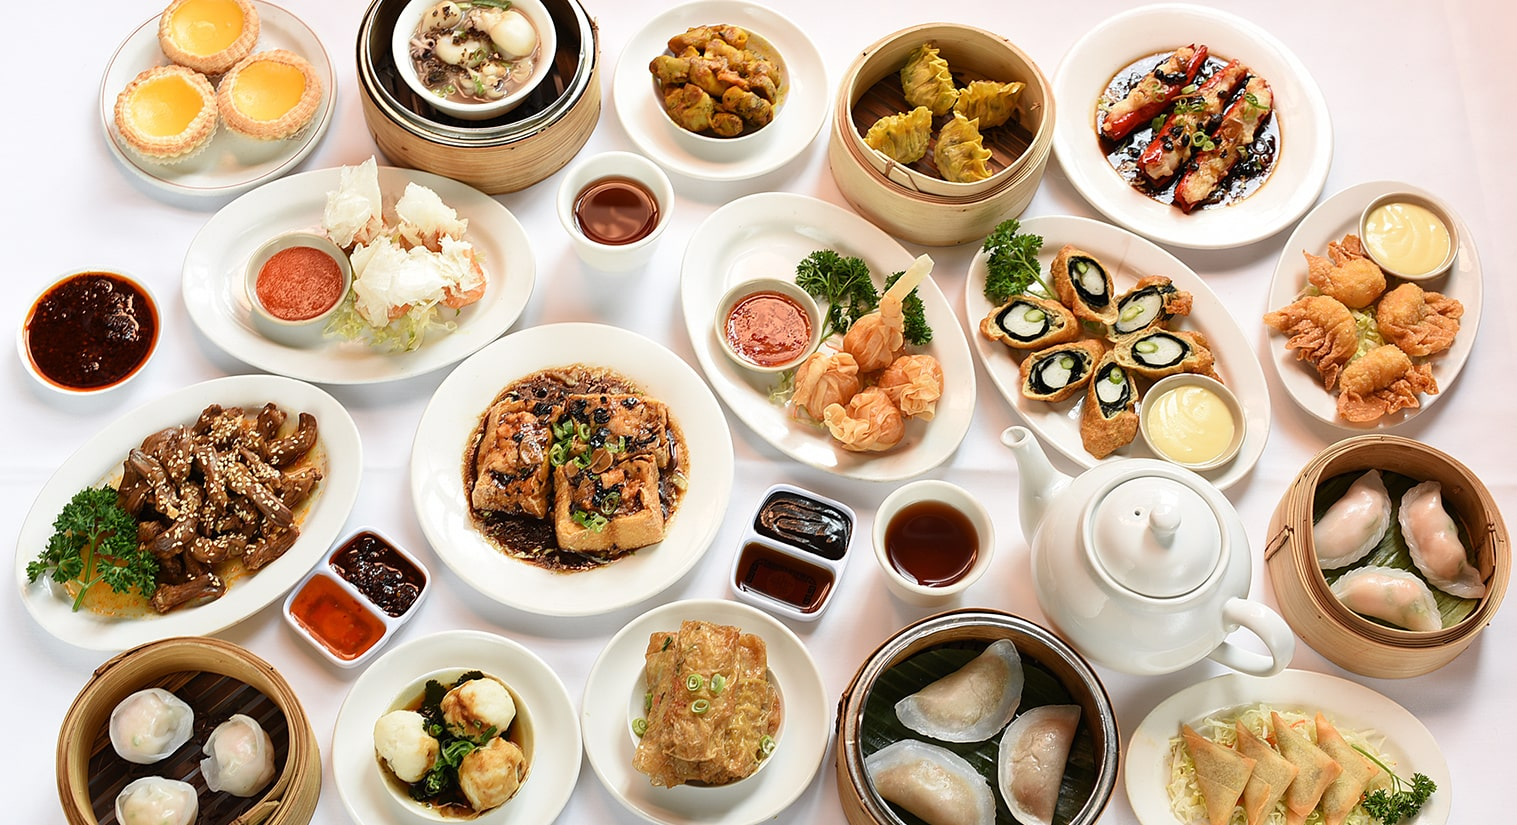 A brief history of Dim Sum